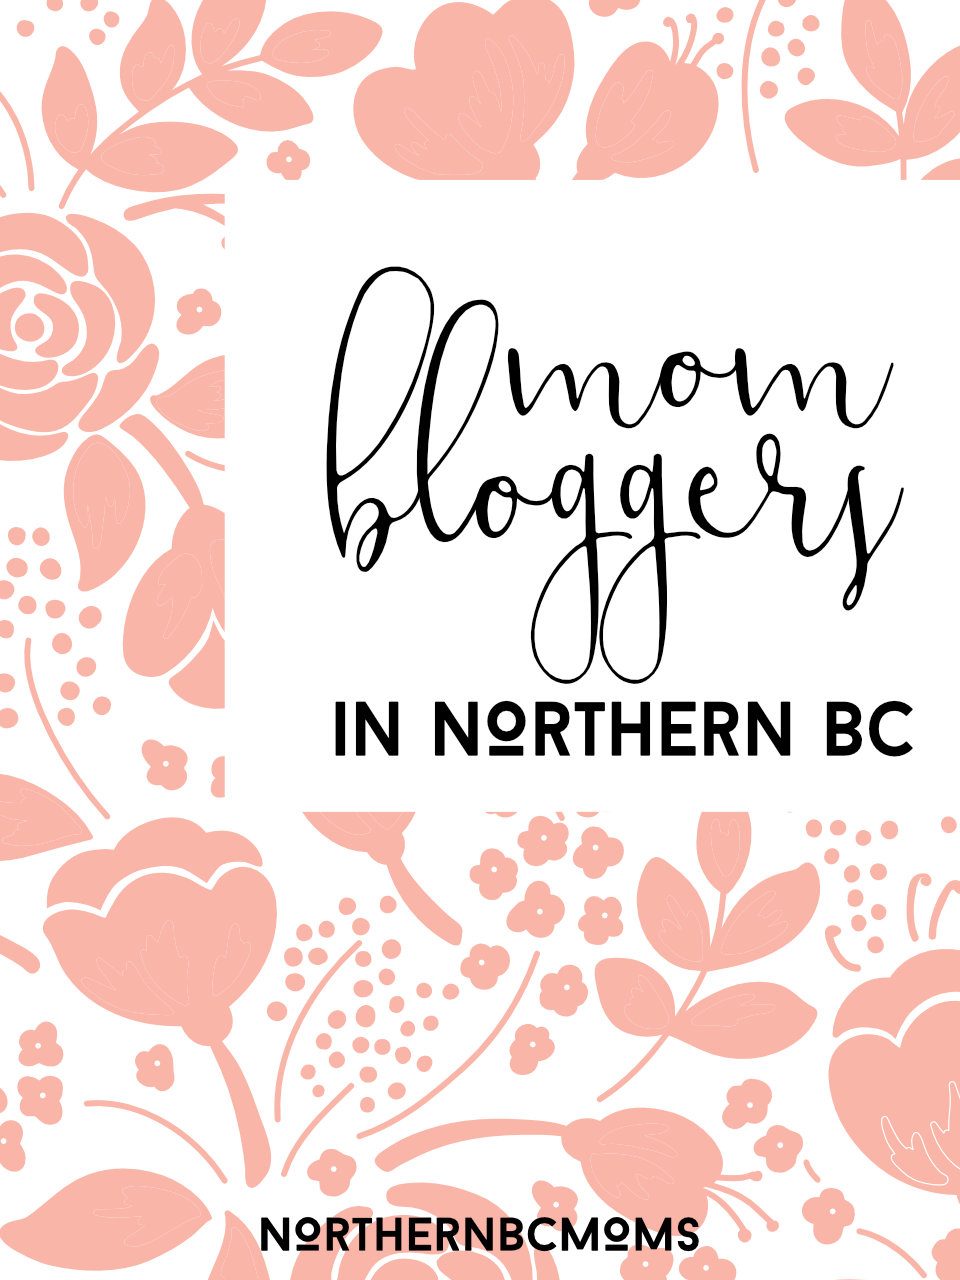 Northern BC Mom Bloggers